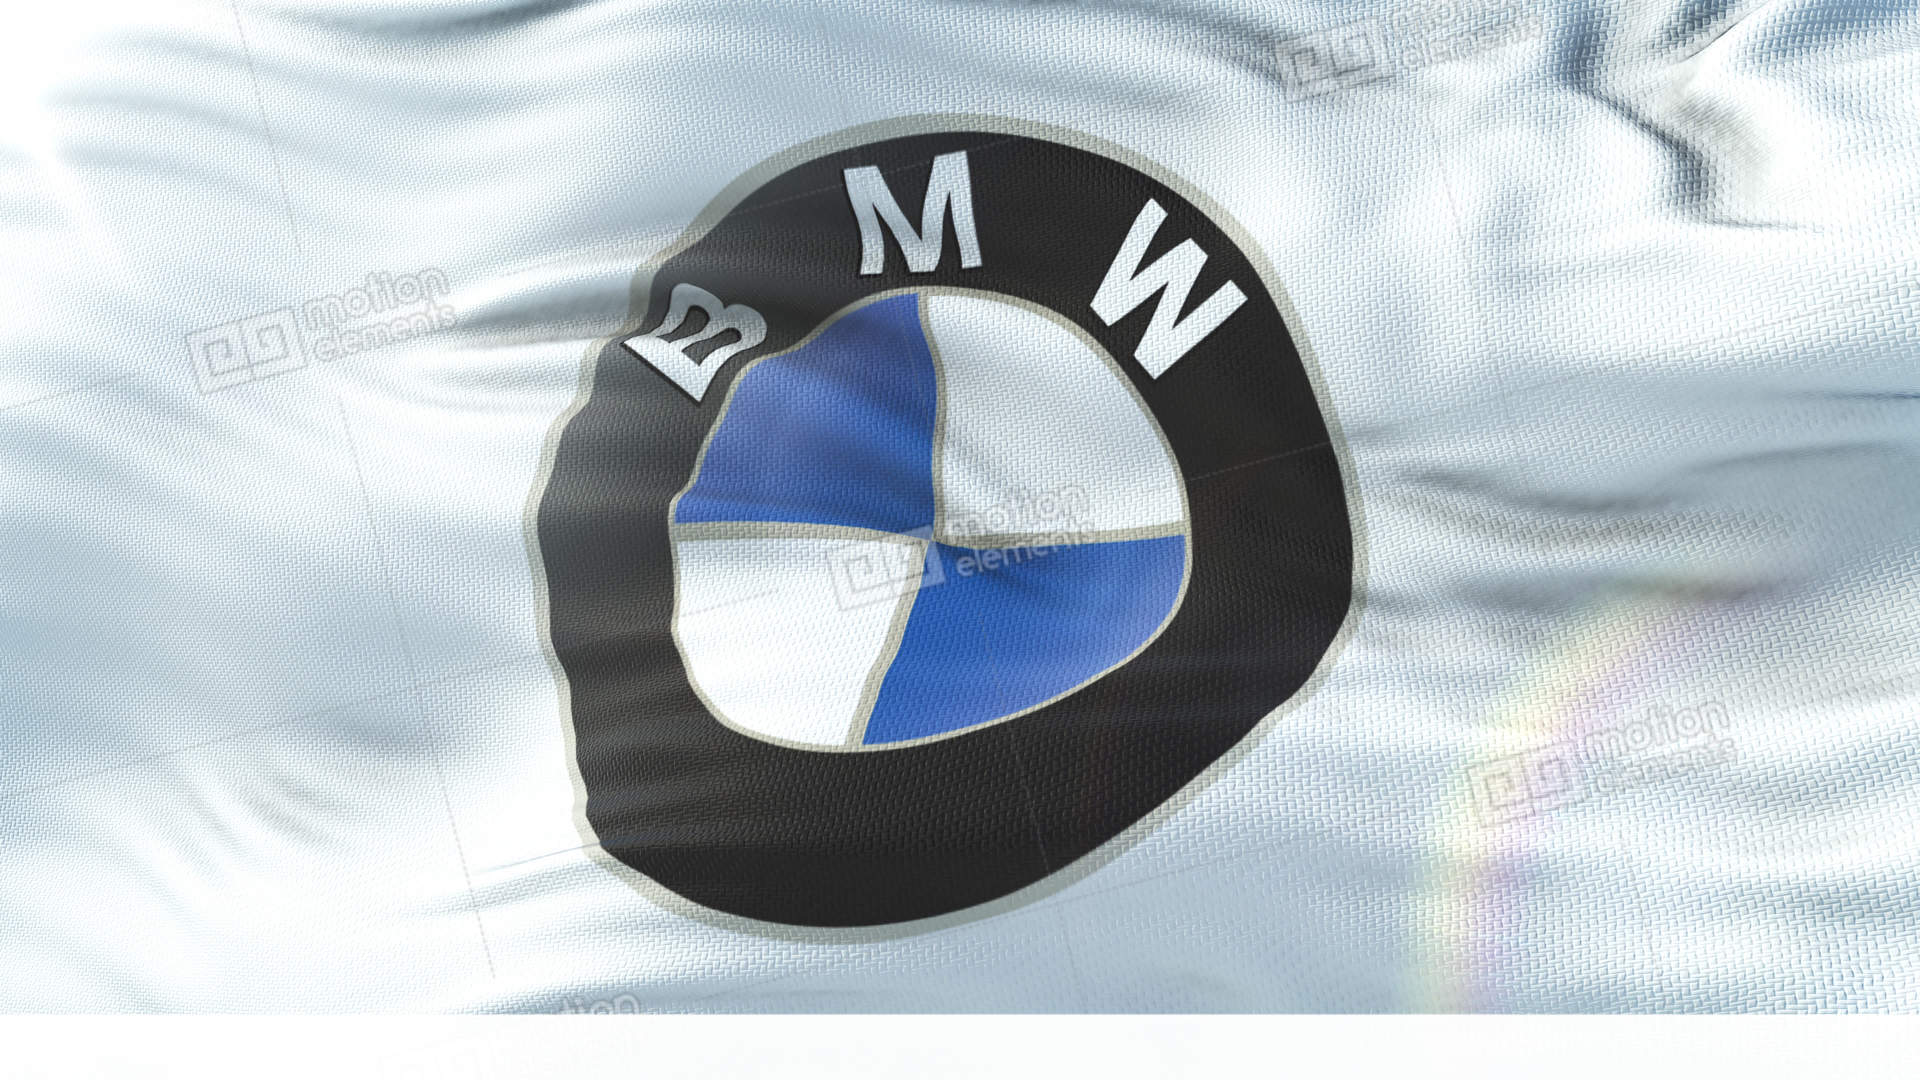 Bmw Flag Waving On Sun Seamless Loop With Highly Detailed Fabric